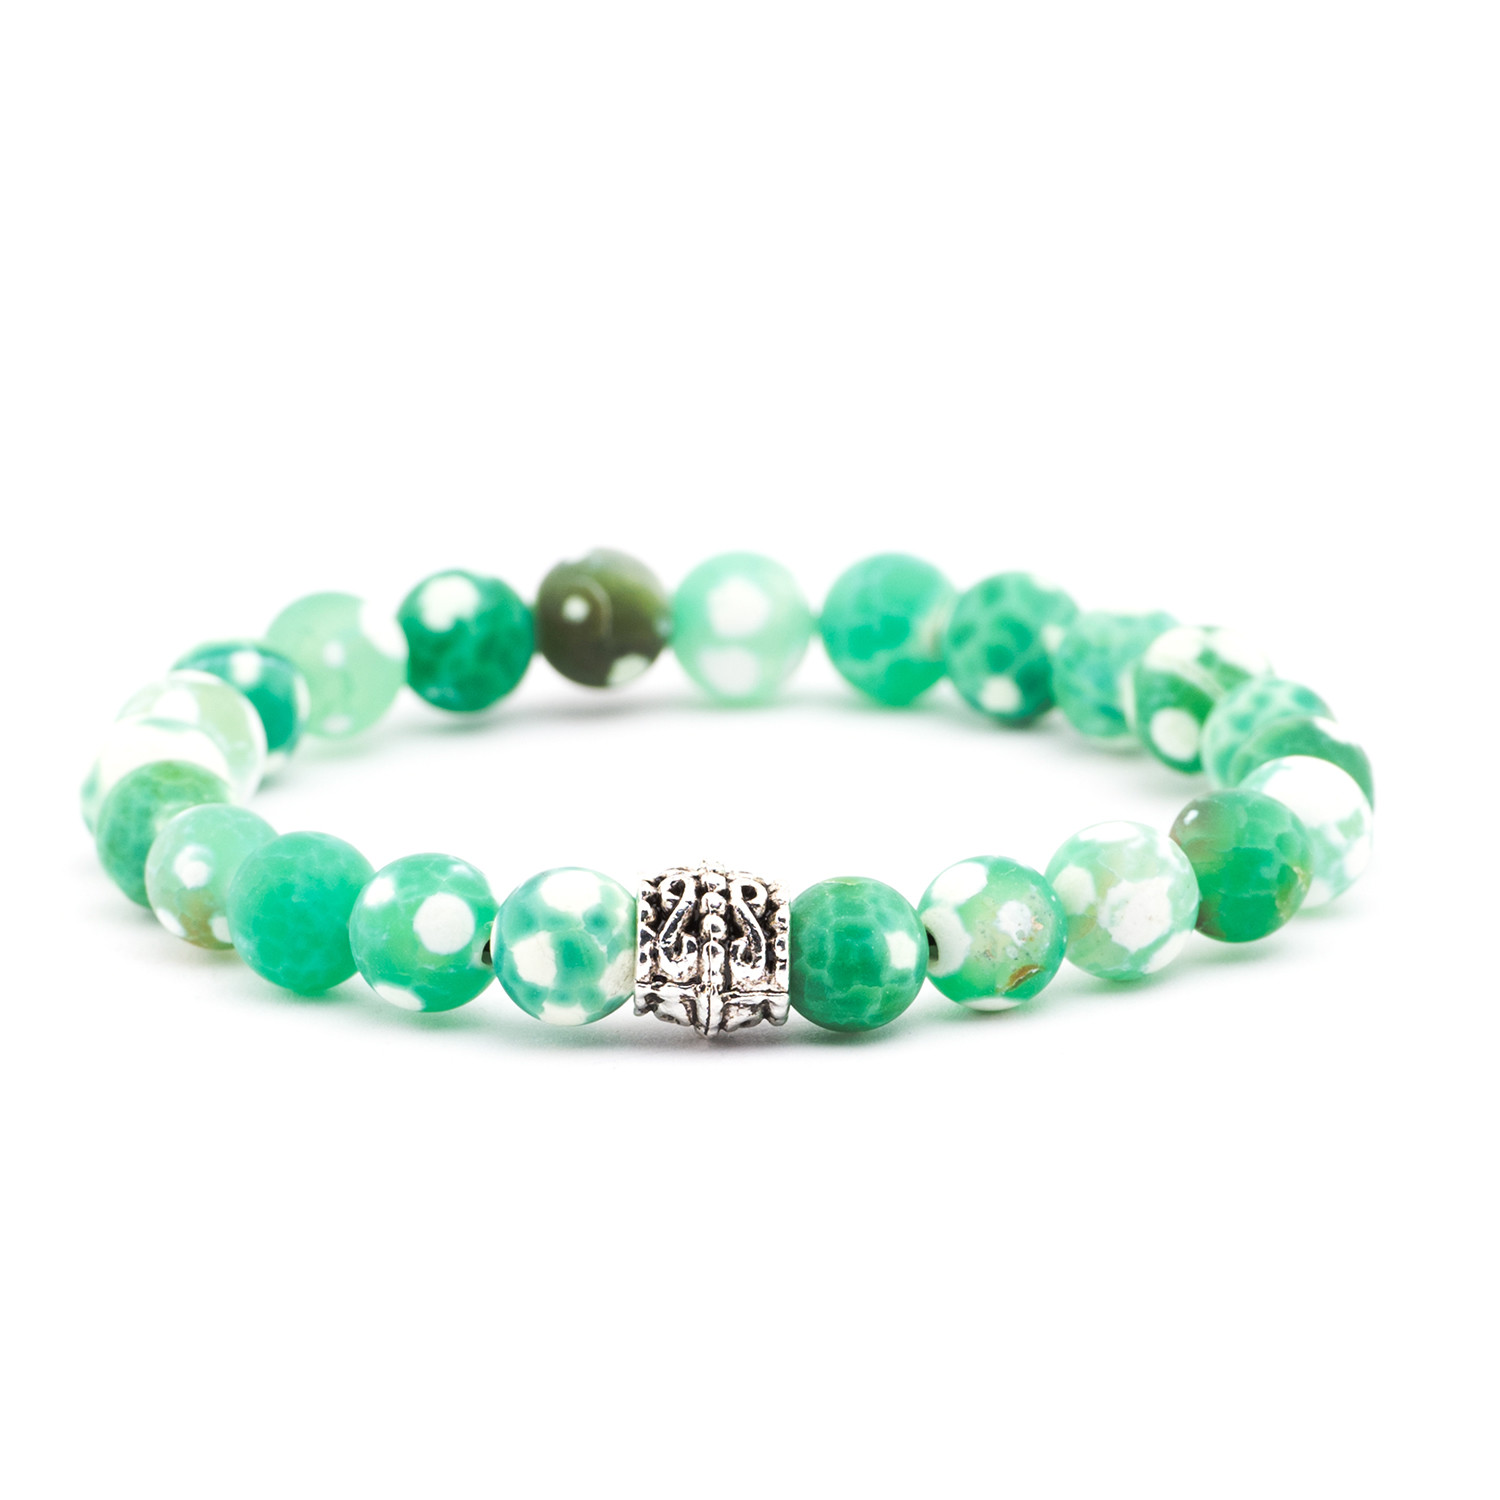 green adventurine essential lava aventurine product stone becb blueberryy little oil bracelet